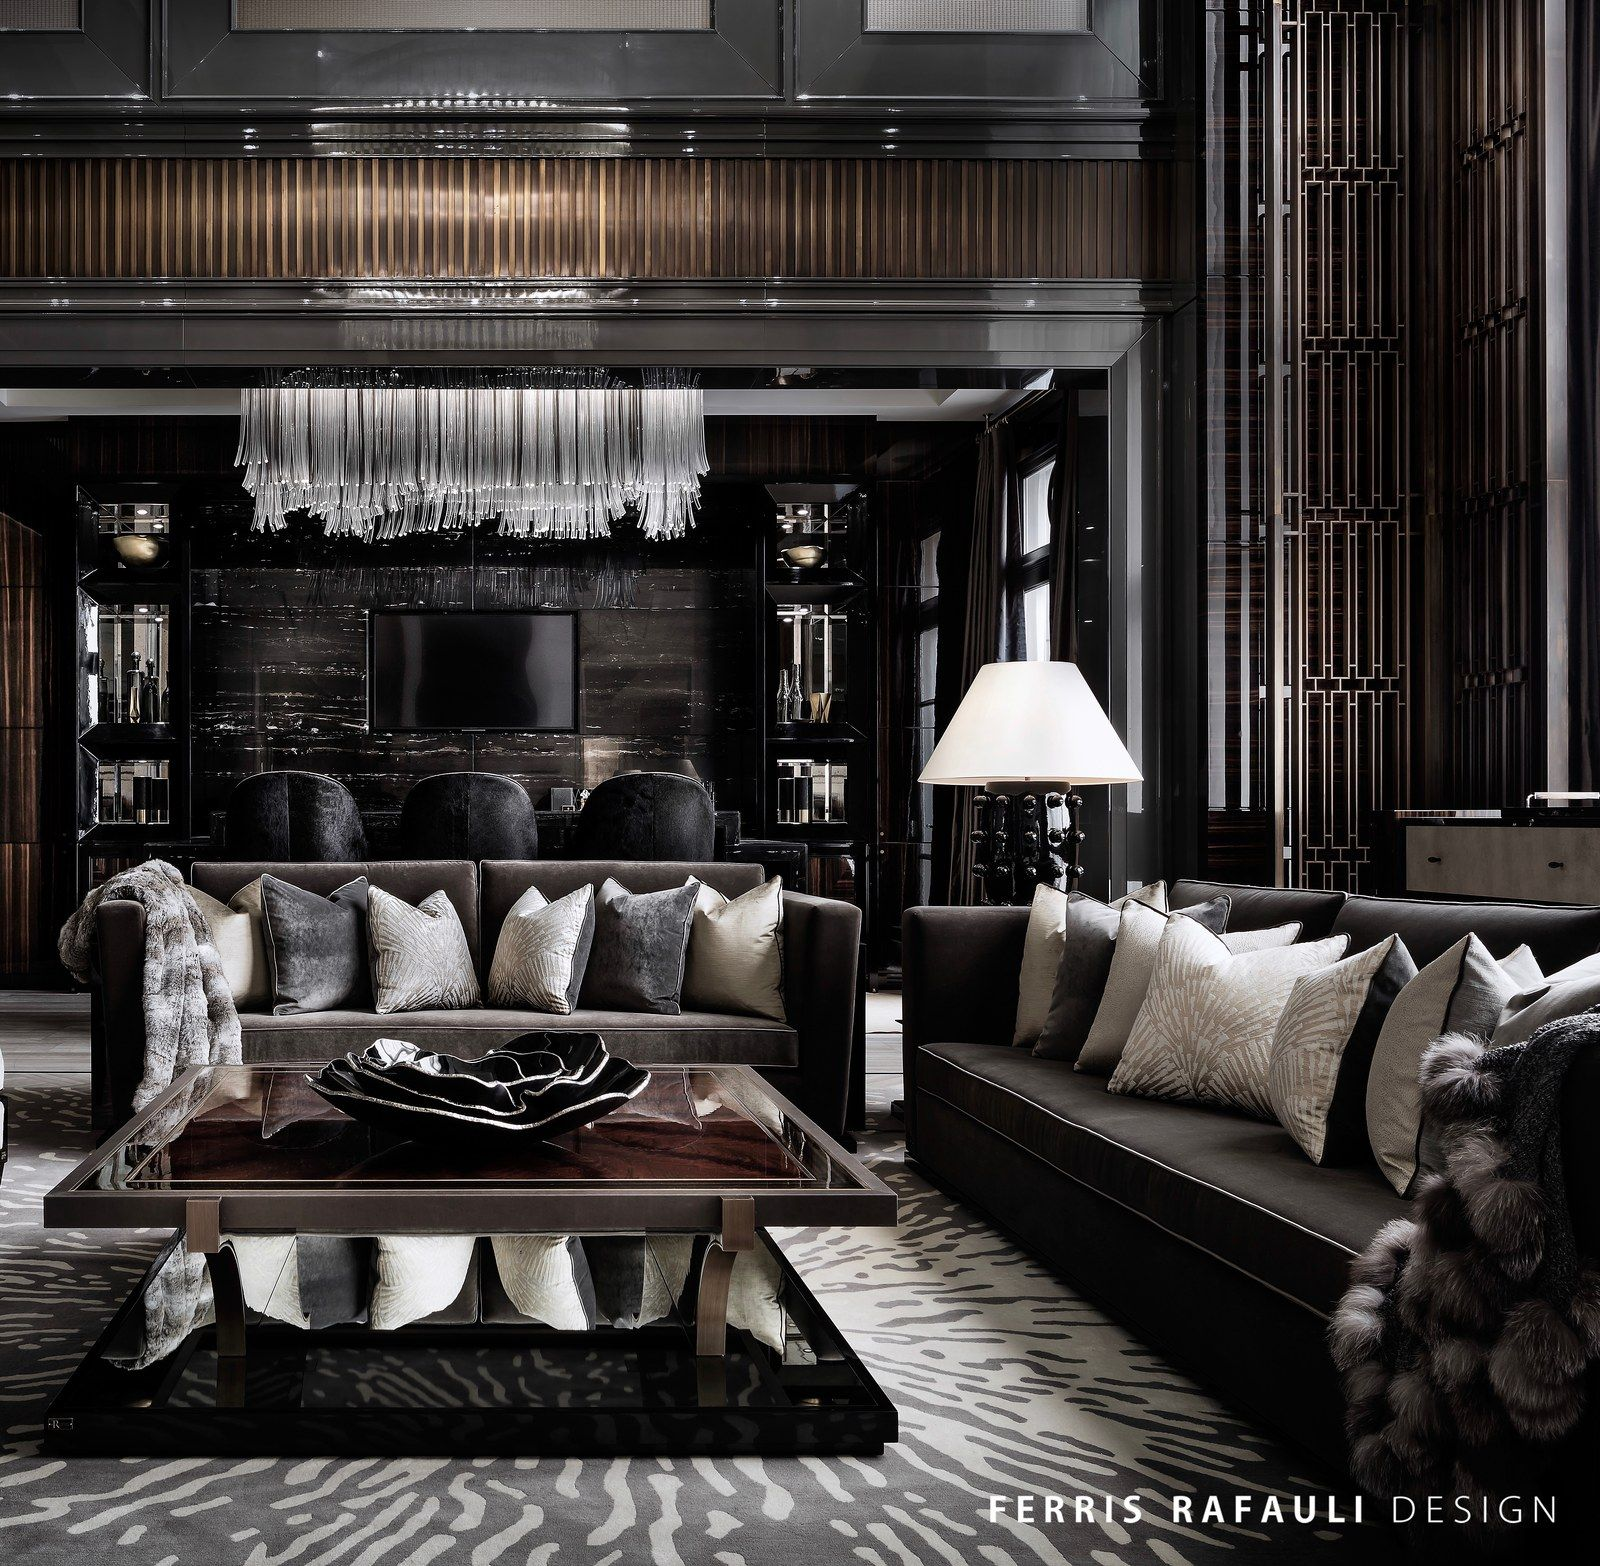 50 Luxury Living Room Ideas: Architecture By Ferris Rafauli